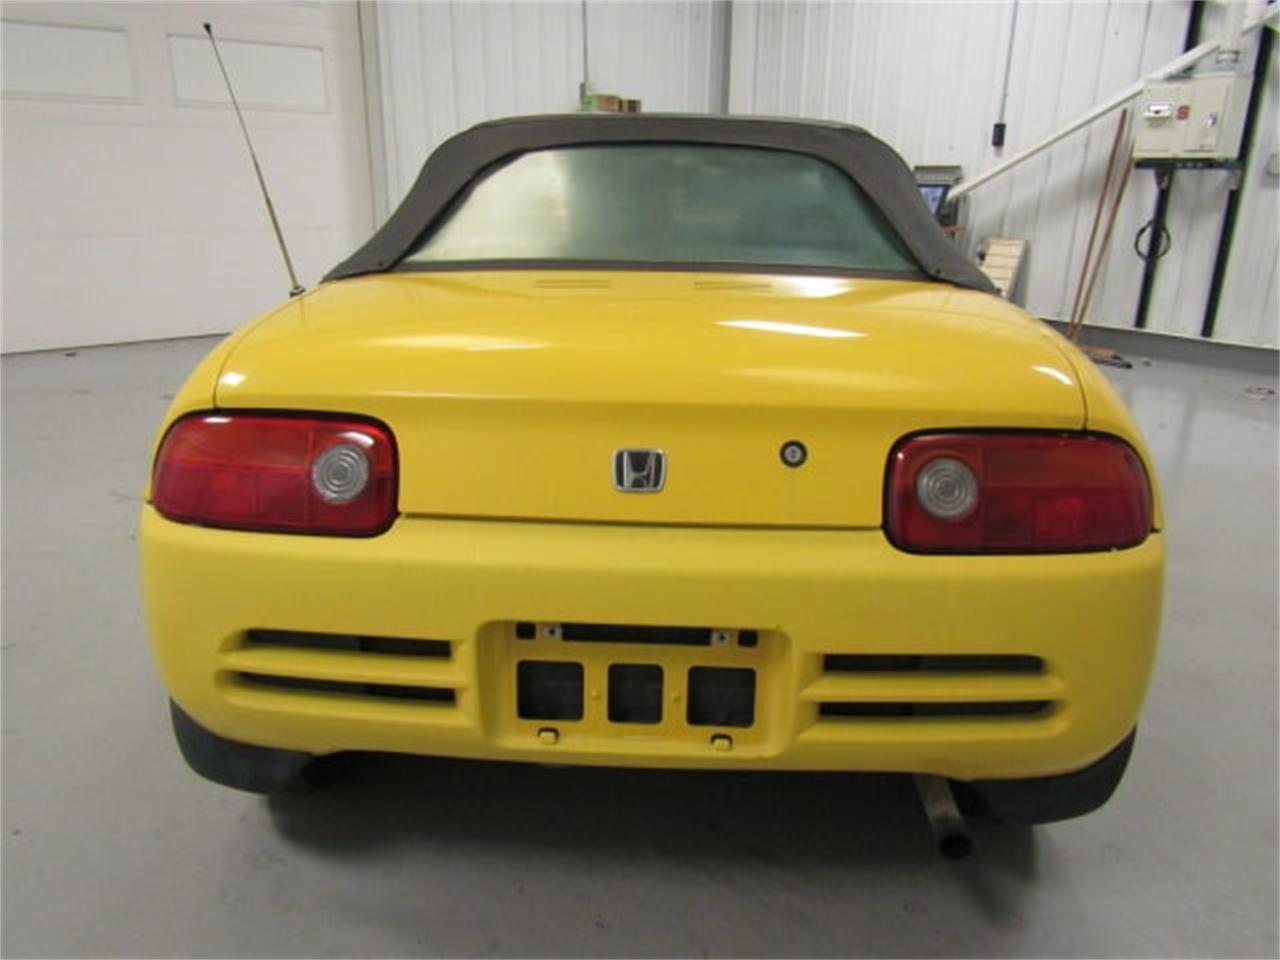 Large Picture of 1991 Honda Beat located in Virginia Offered by Duncan Imports & Classic Cars - JL81